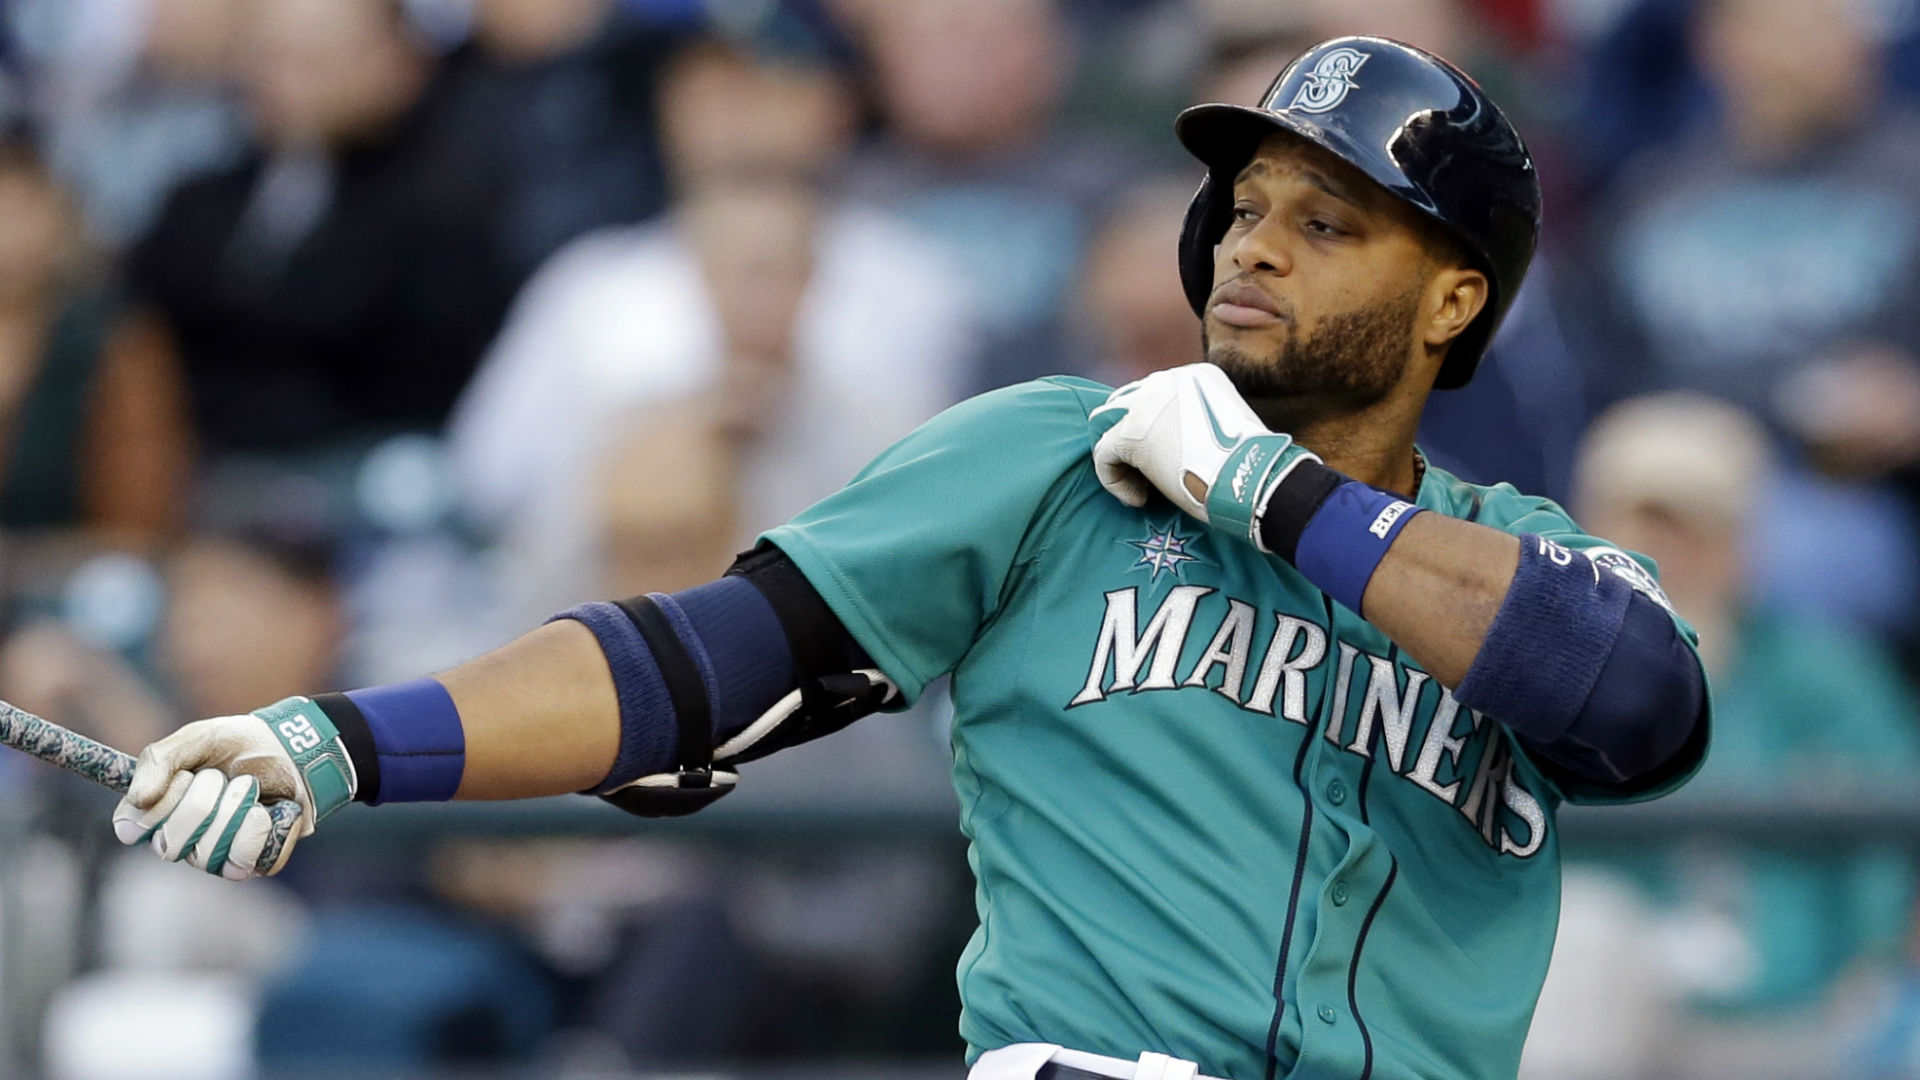 Robinson Cano nearing Hall of Fame ...